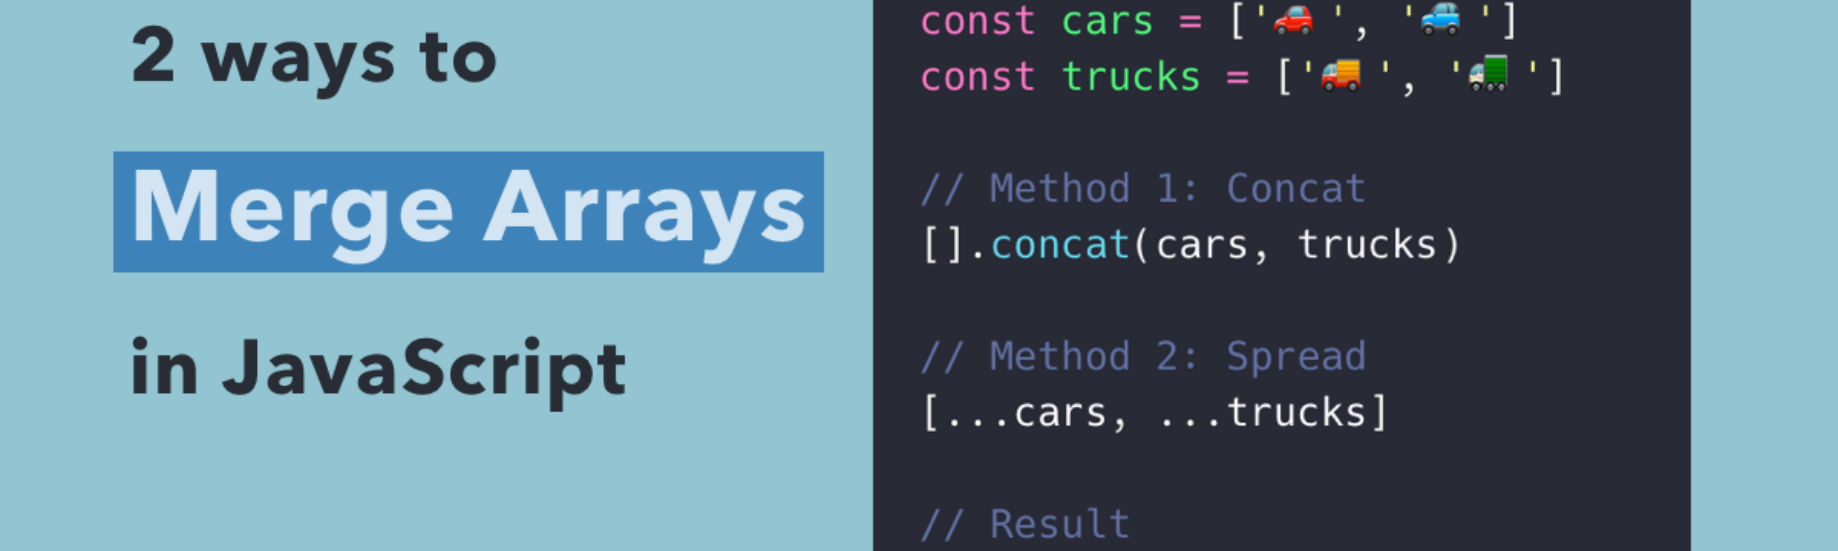 2 Ways to Merge Arrays in JavaScript | SamanthaMing com